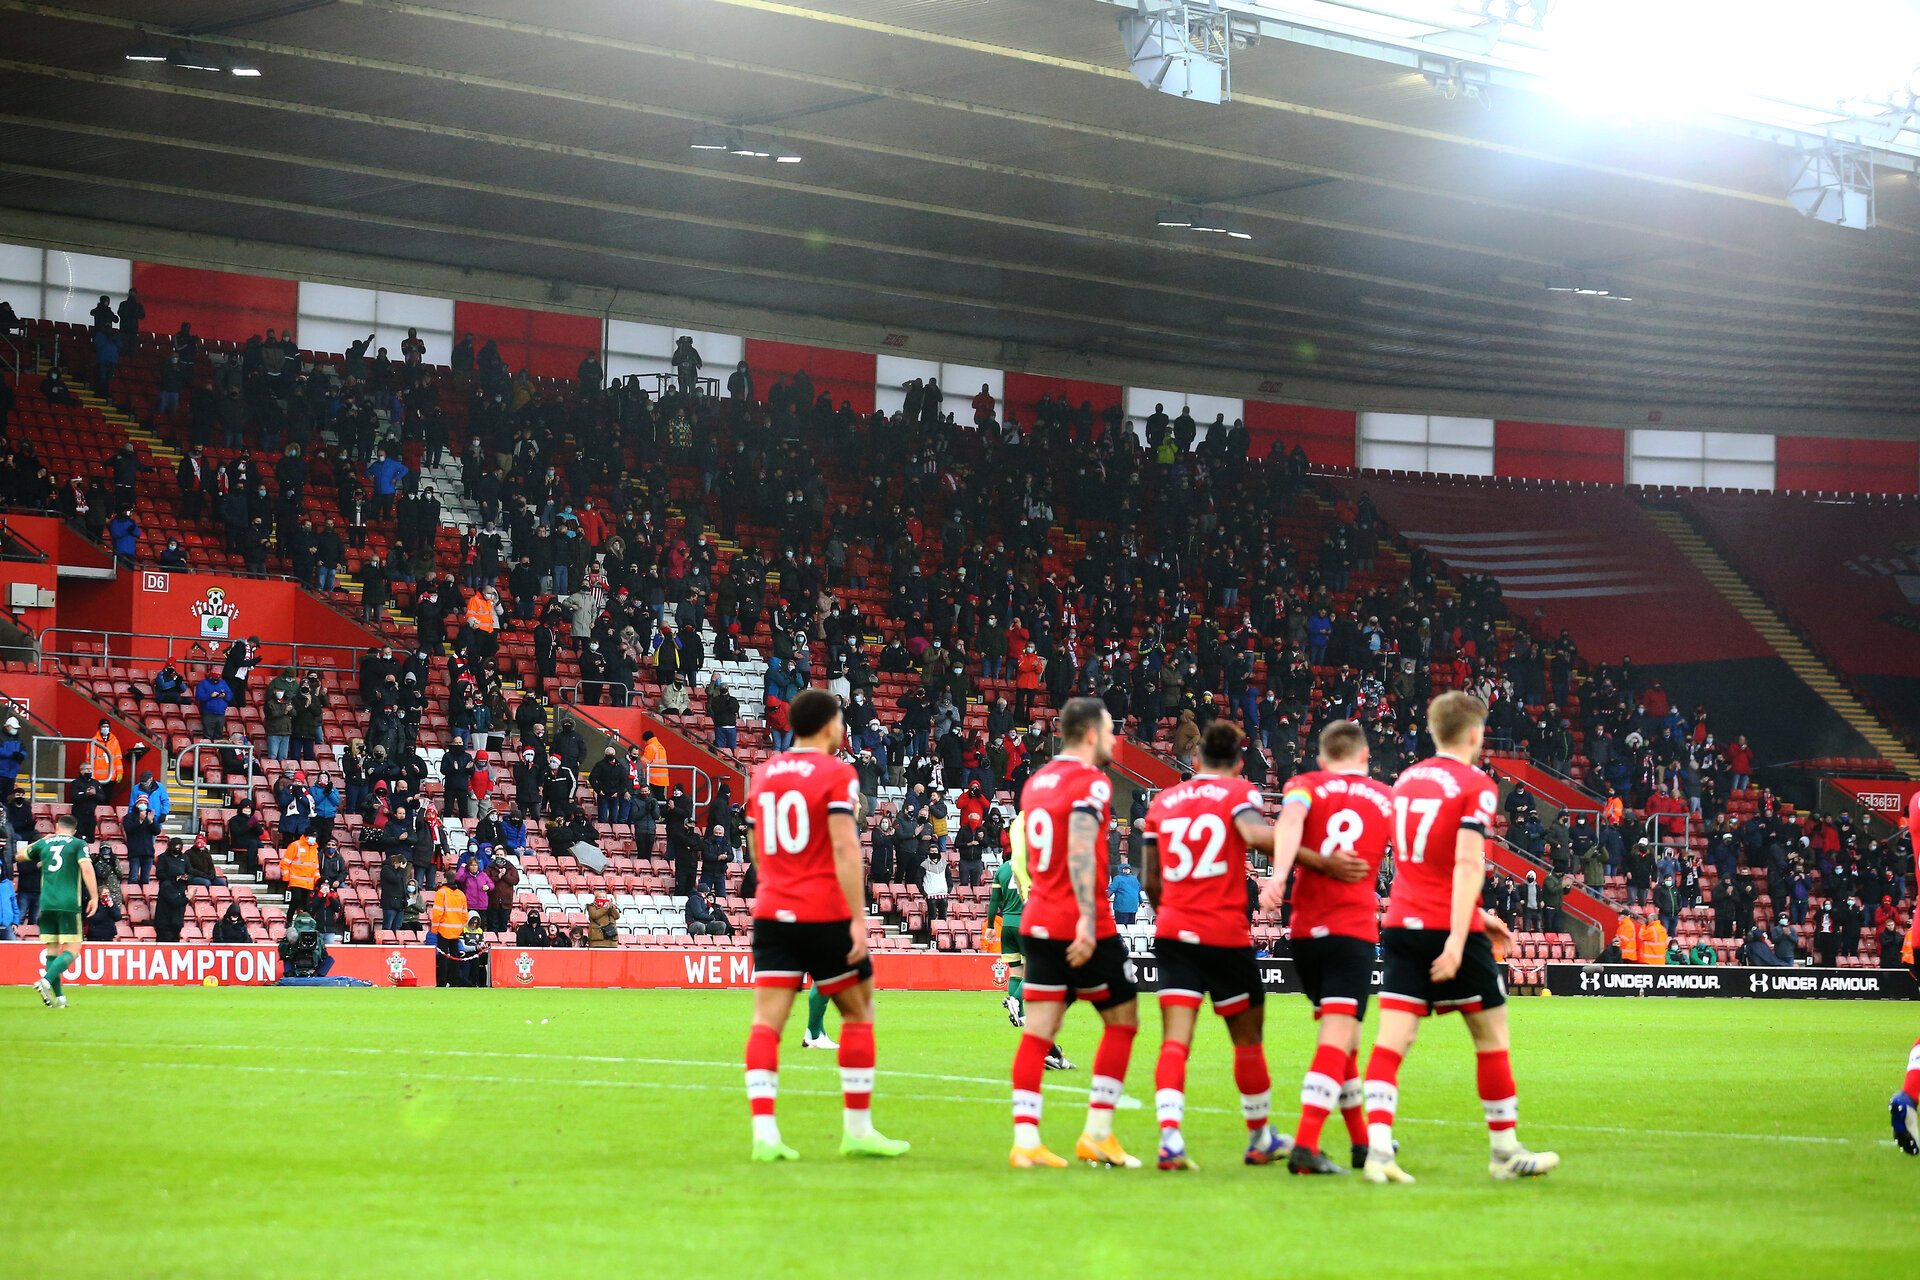 SOUTHAMPTON, ENGLAND - DECEMBER 13: Southampton fans celebrate after Stuart Armstrong makes it 2-0 during the Premier League match between Southampton and Sheffield United at St Mary's Stadium on December 13, 2020 in Southampton, England. A limited number of spectators (2000) are welcomed back to stadiums to watch elite football across England. This was following easing of restrictions on spectators in tiers one and two areas only. (Photo by Matt Watson/Southampton FC via Getty Images)